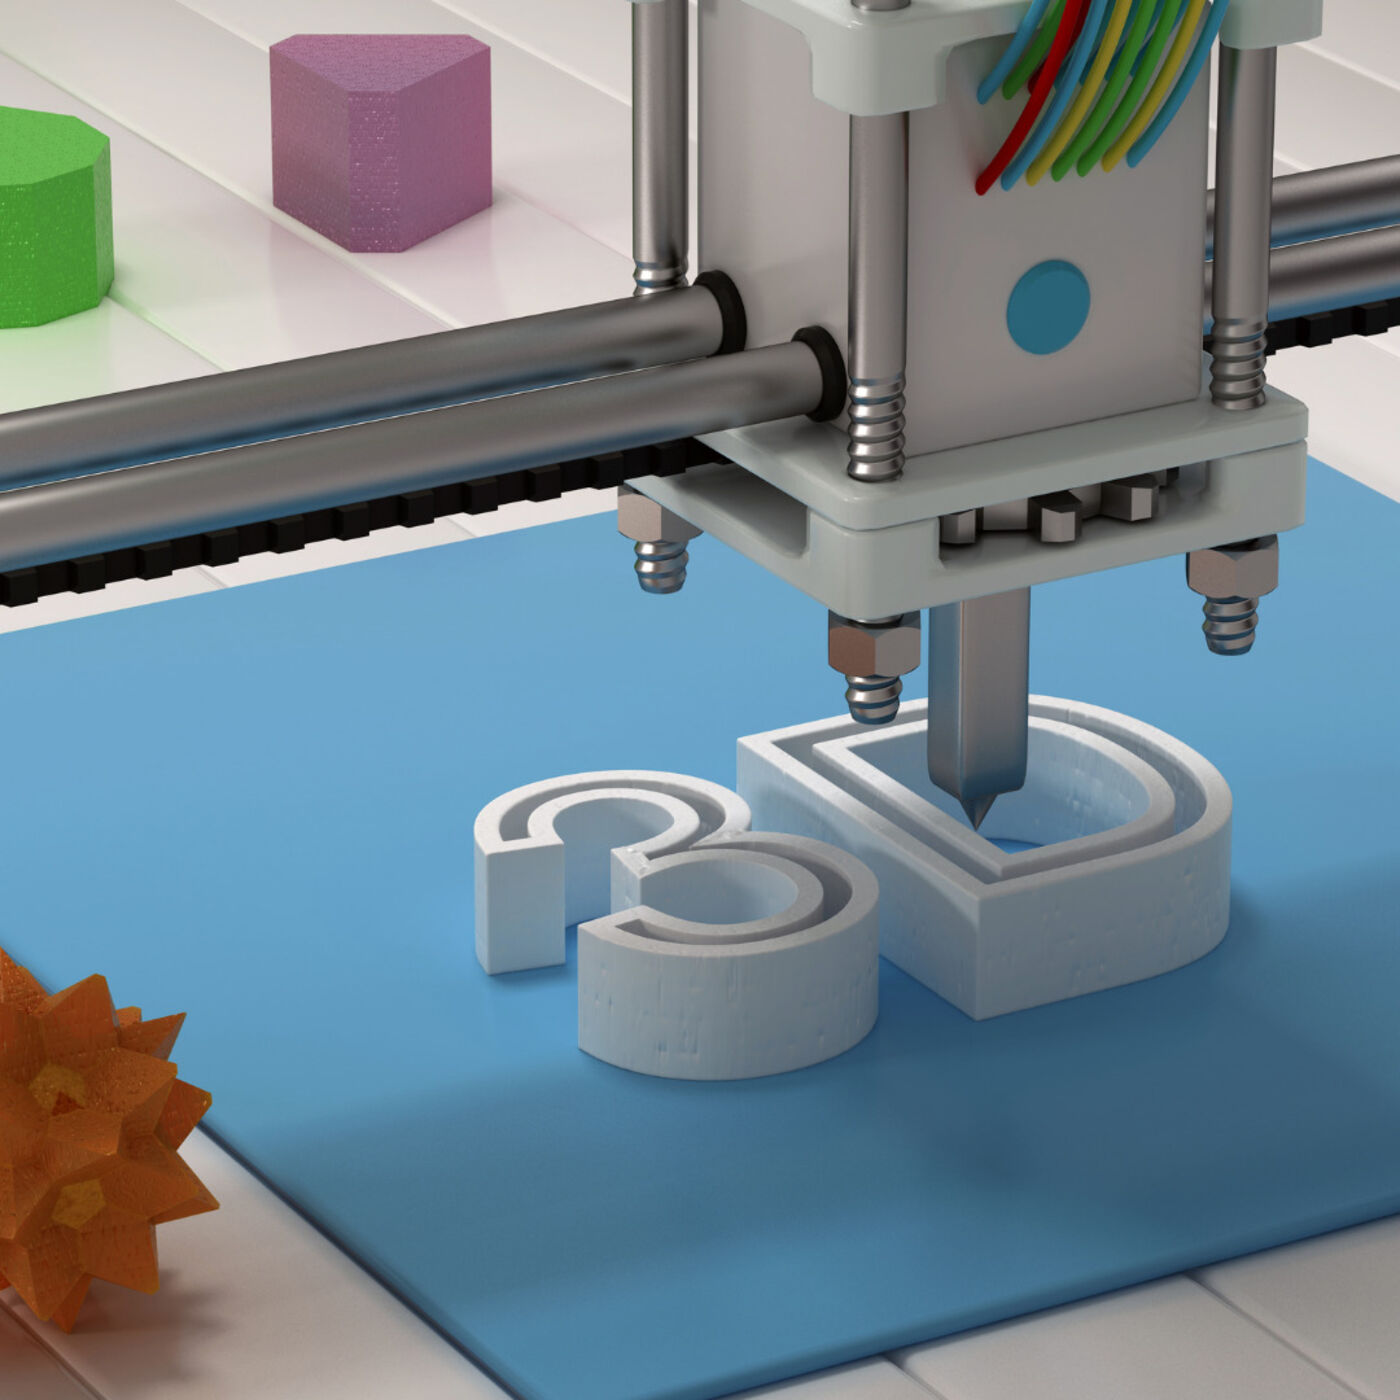 Will 3D Printing Change the Supply Chain for Truck Parts?